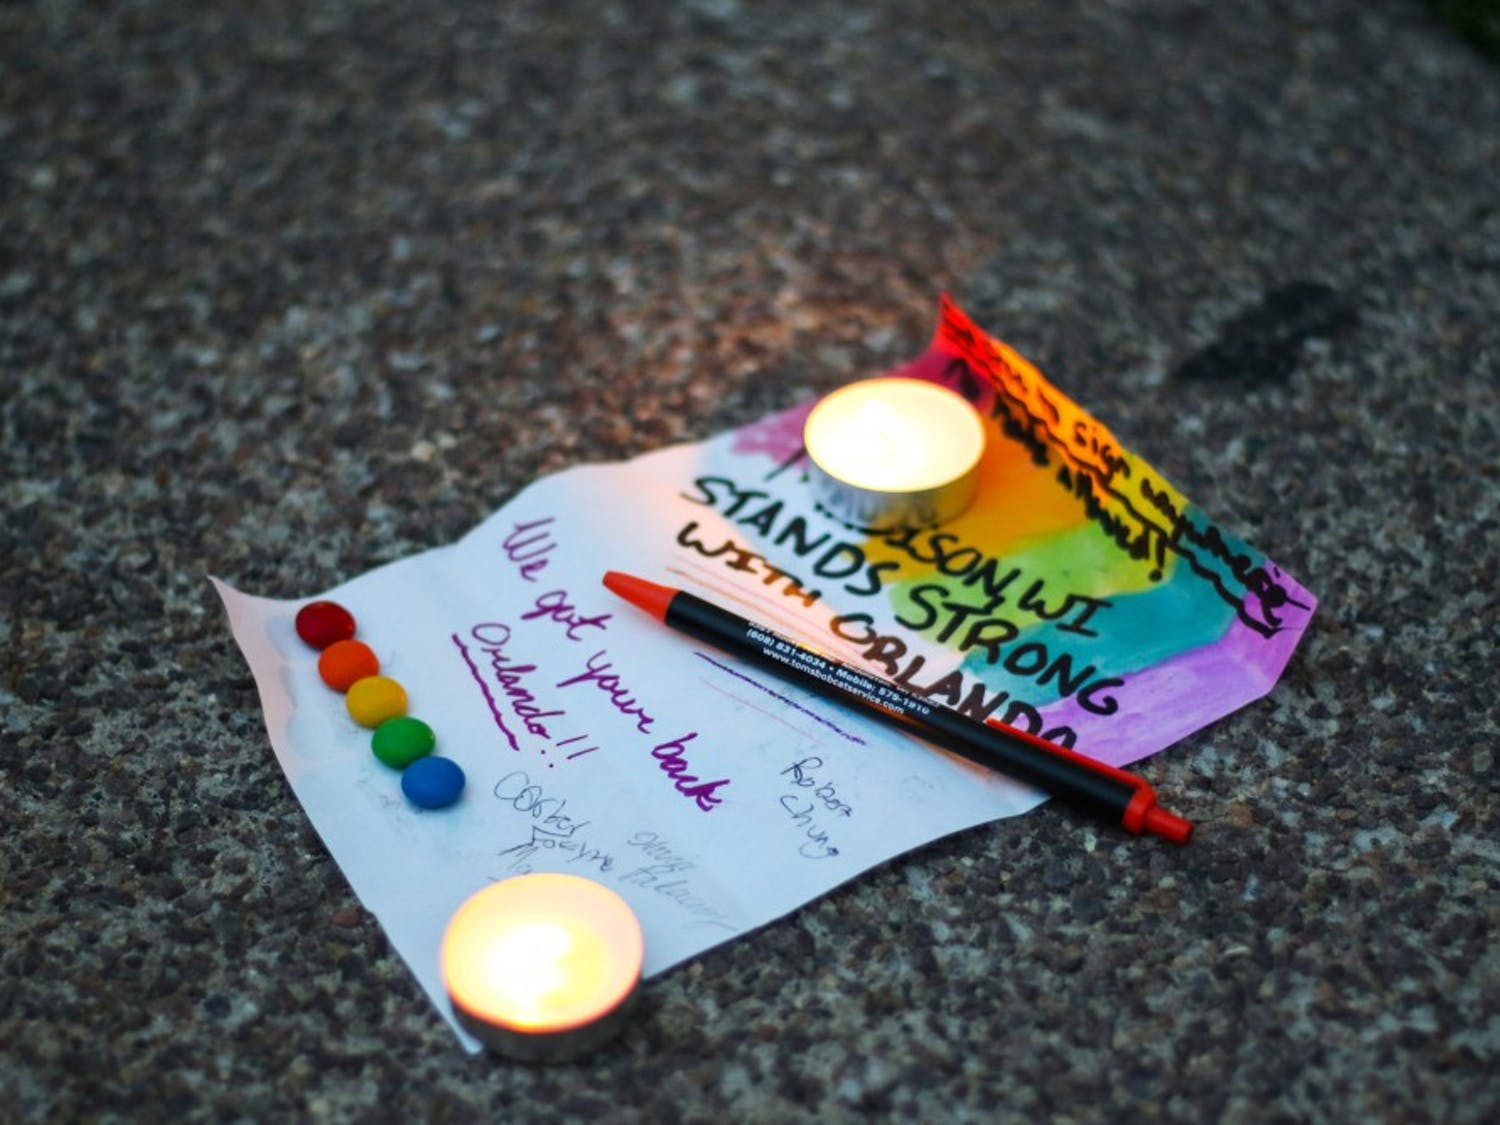 Members of the Madison community organized candlelight vigils in the days following the Orlando, FL mass shooting in a popular gay night club. The vigils were held in support of the victims, their families and the LGBT community as a whole.